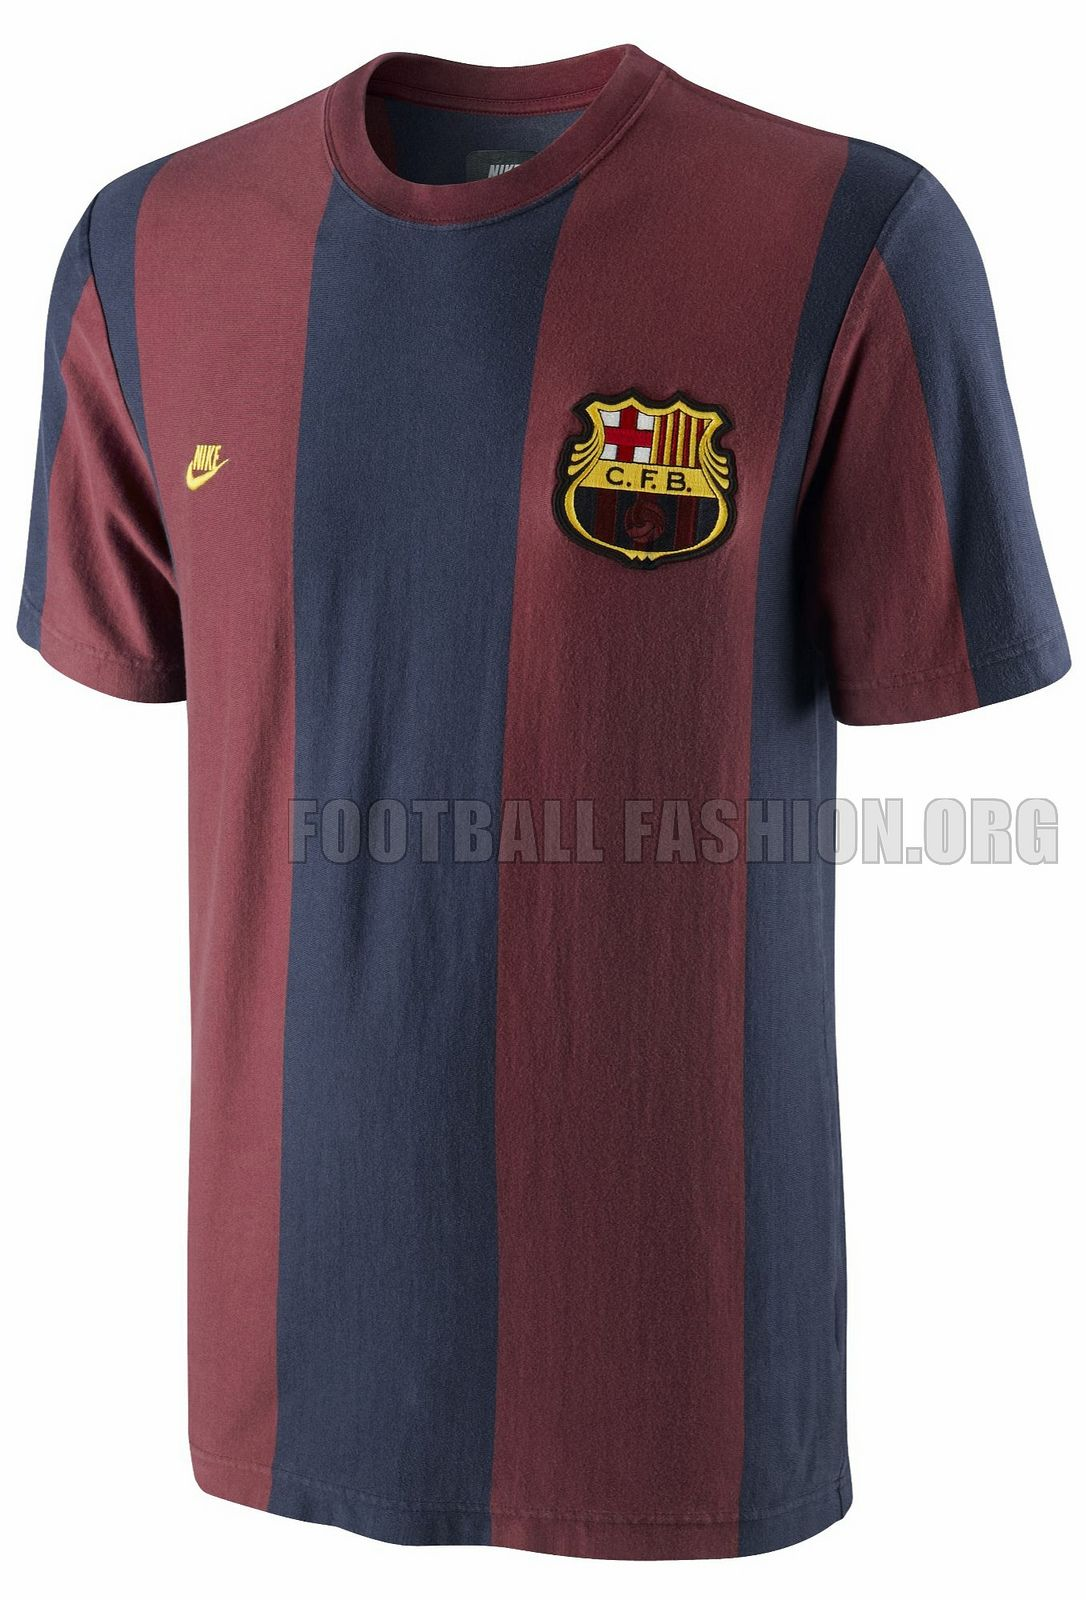 FC Barcelona Nike Covert Vintage 73 Throwback Shirt 8e415ff6244